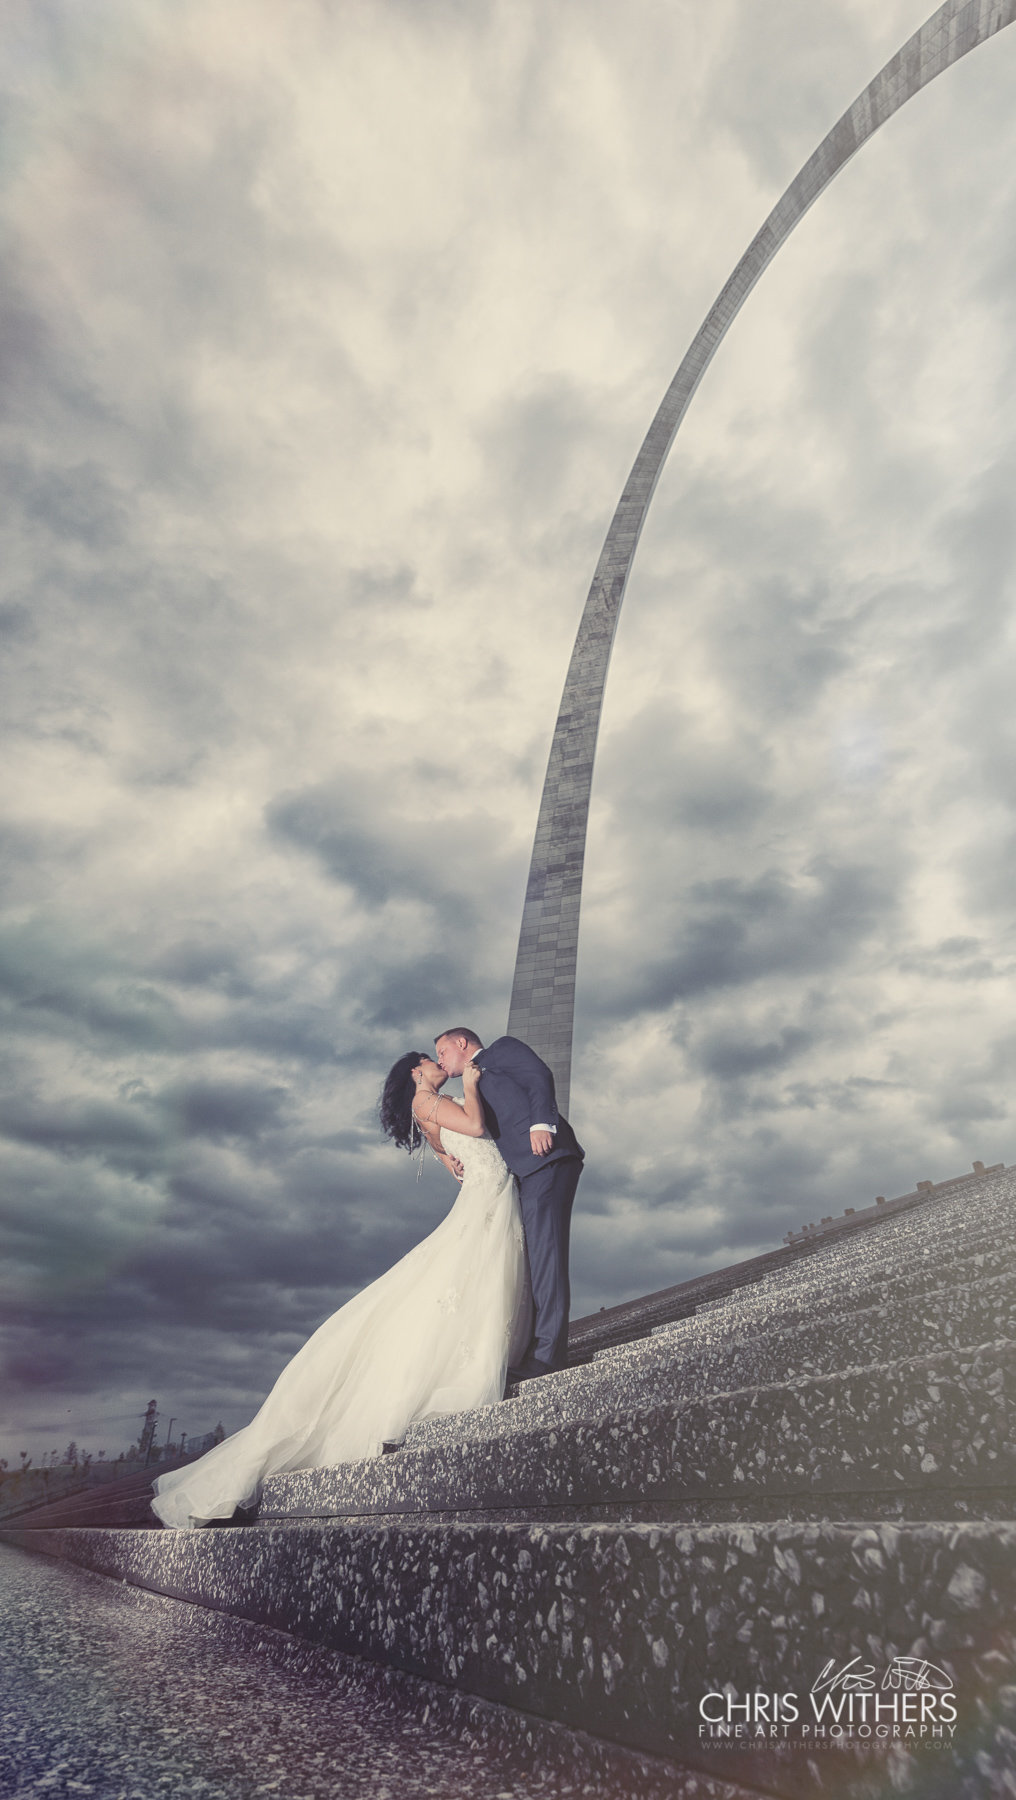 Springfield Illinois Wedding Photographer - Chris Withers Photography (102 of 159)